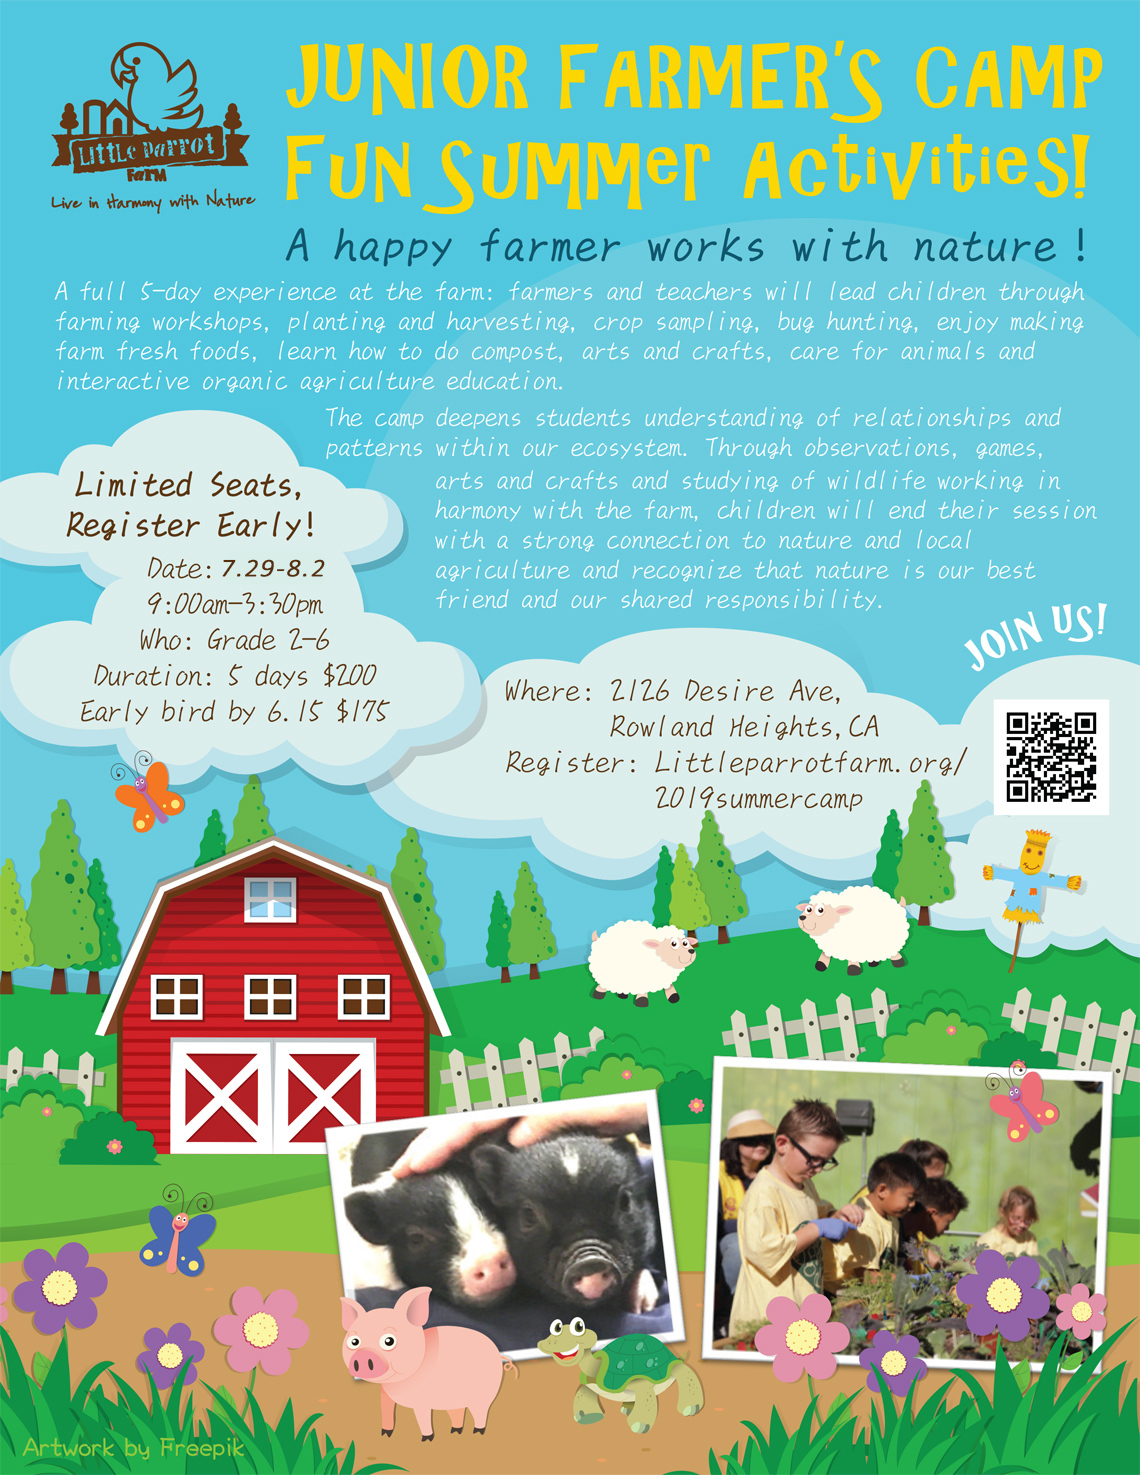 2019 Summer Camp Junior Farmer 0729-0802